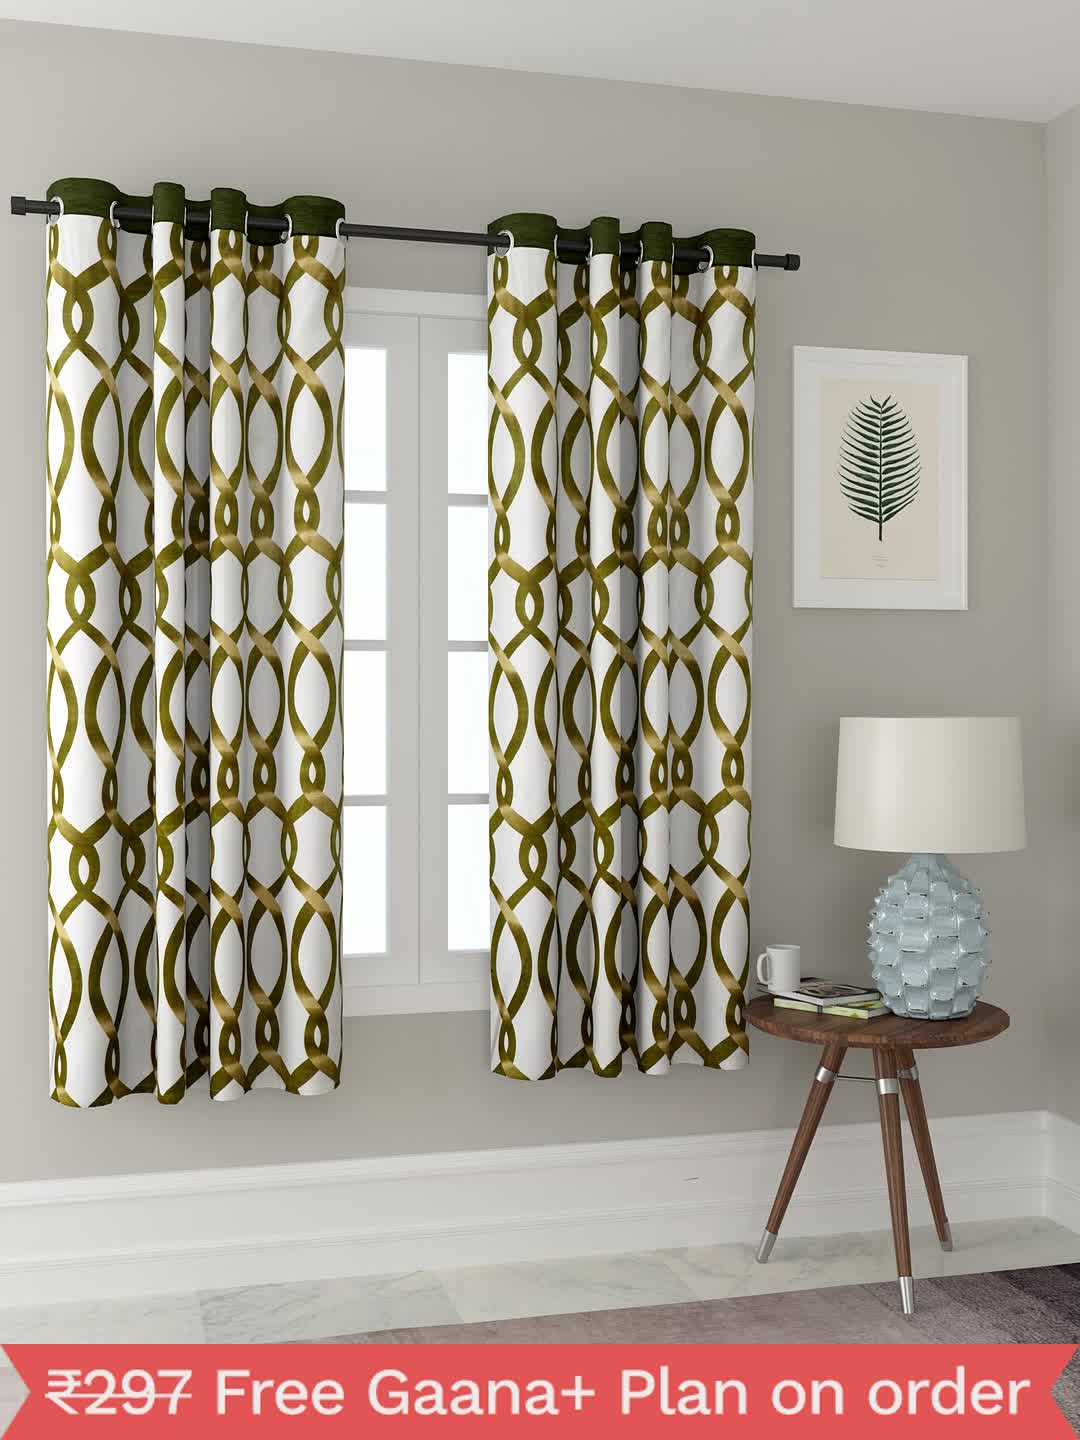 Polyester Printed Window Curtains for Bedroom, Kitchen, Kids or Living Room-012_Set of 2 - 1, Small